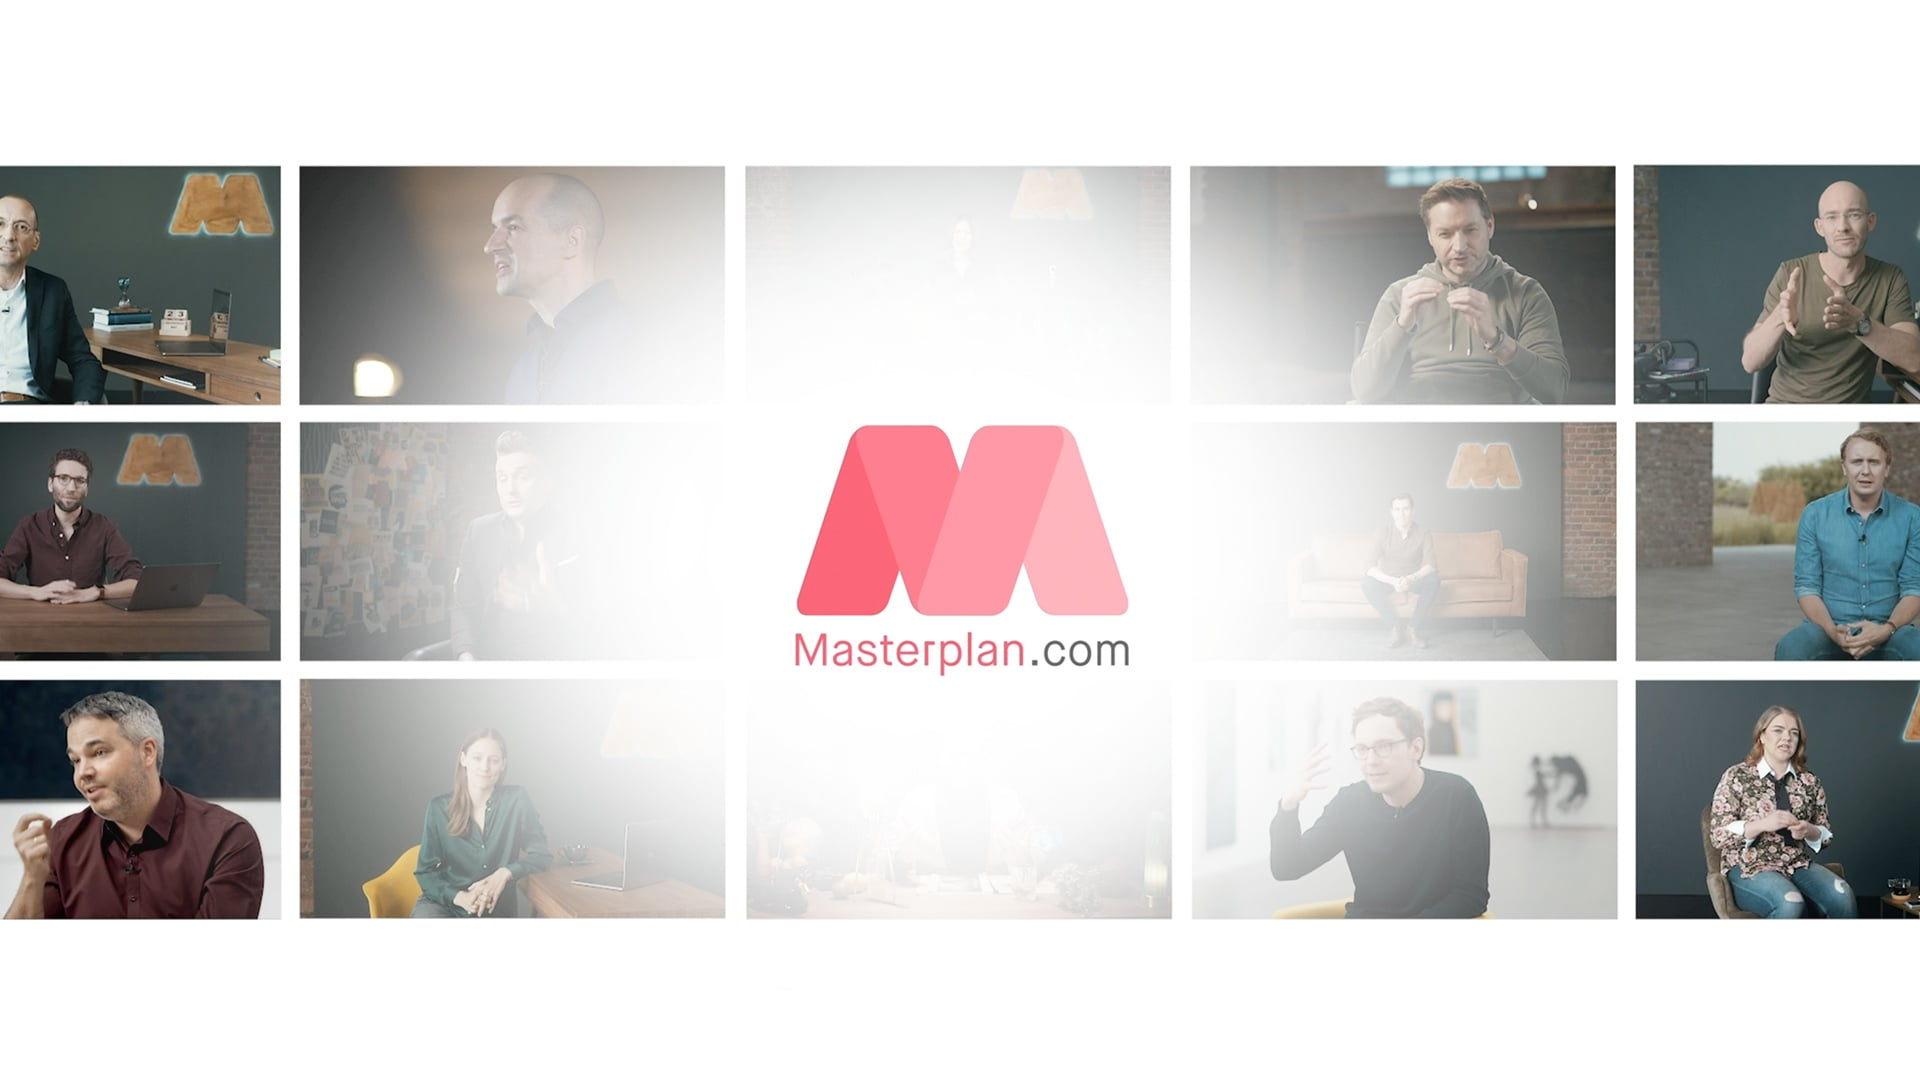 Masterplan.com - Early Commercial (2018)